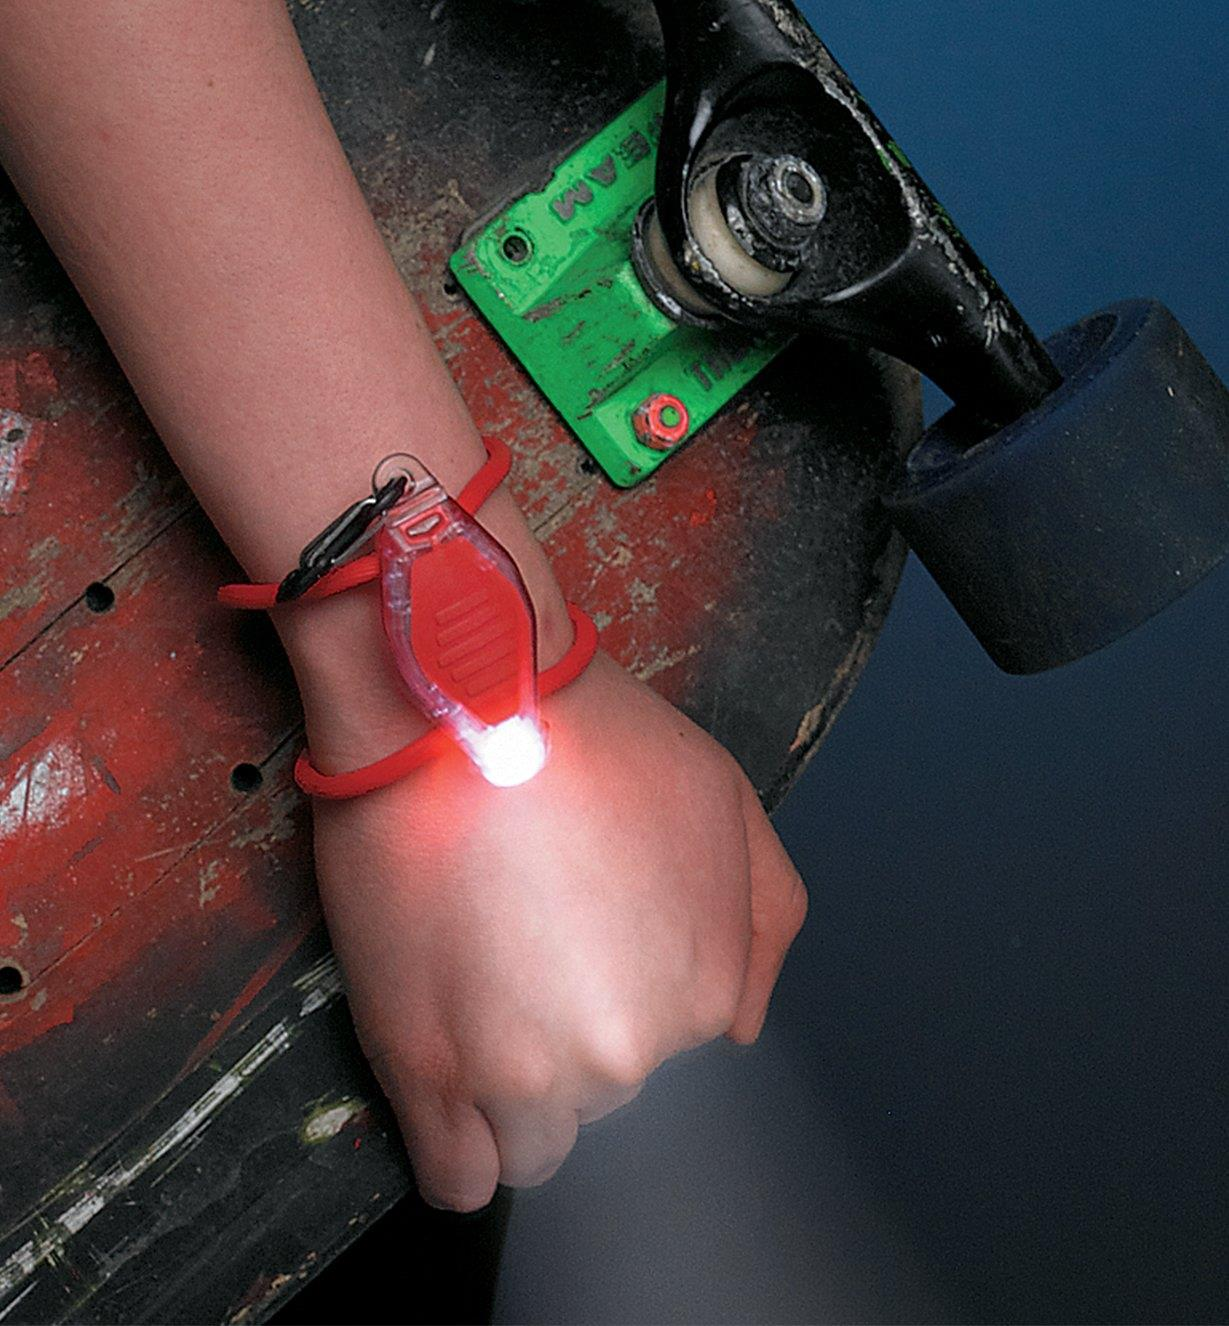 A youth wears a Red BugLit LED Micro-Light on their wrist while carrying a skateboard